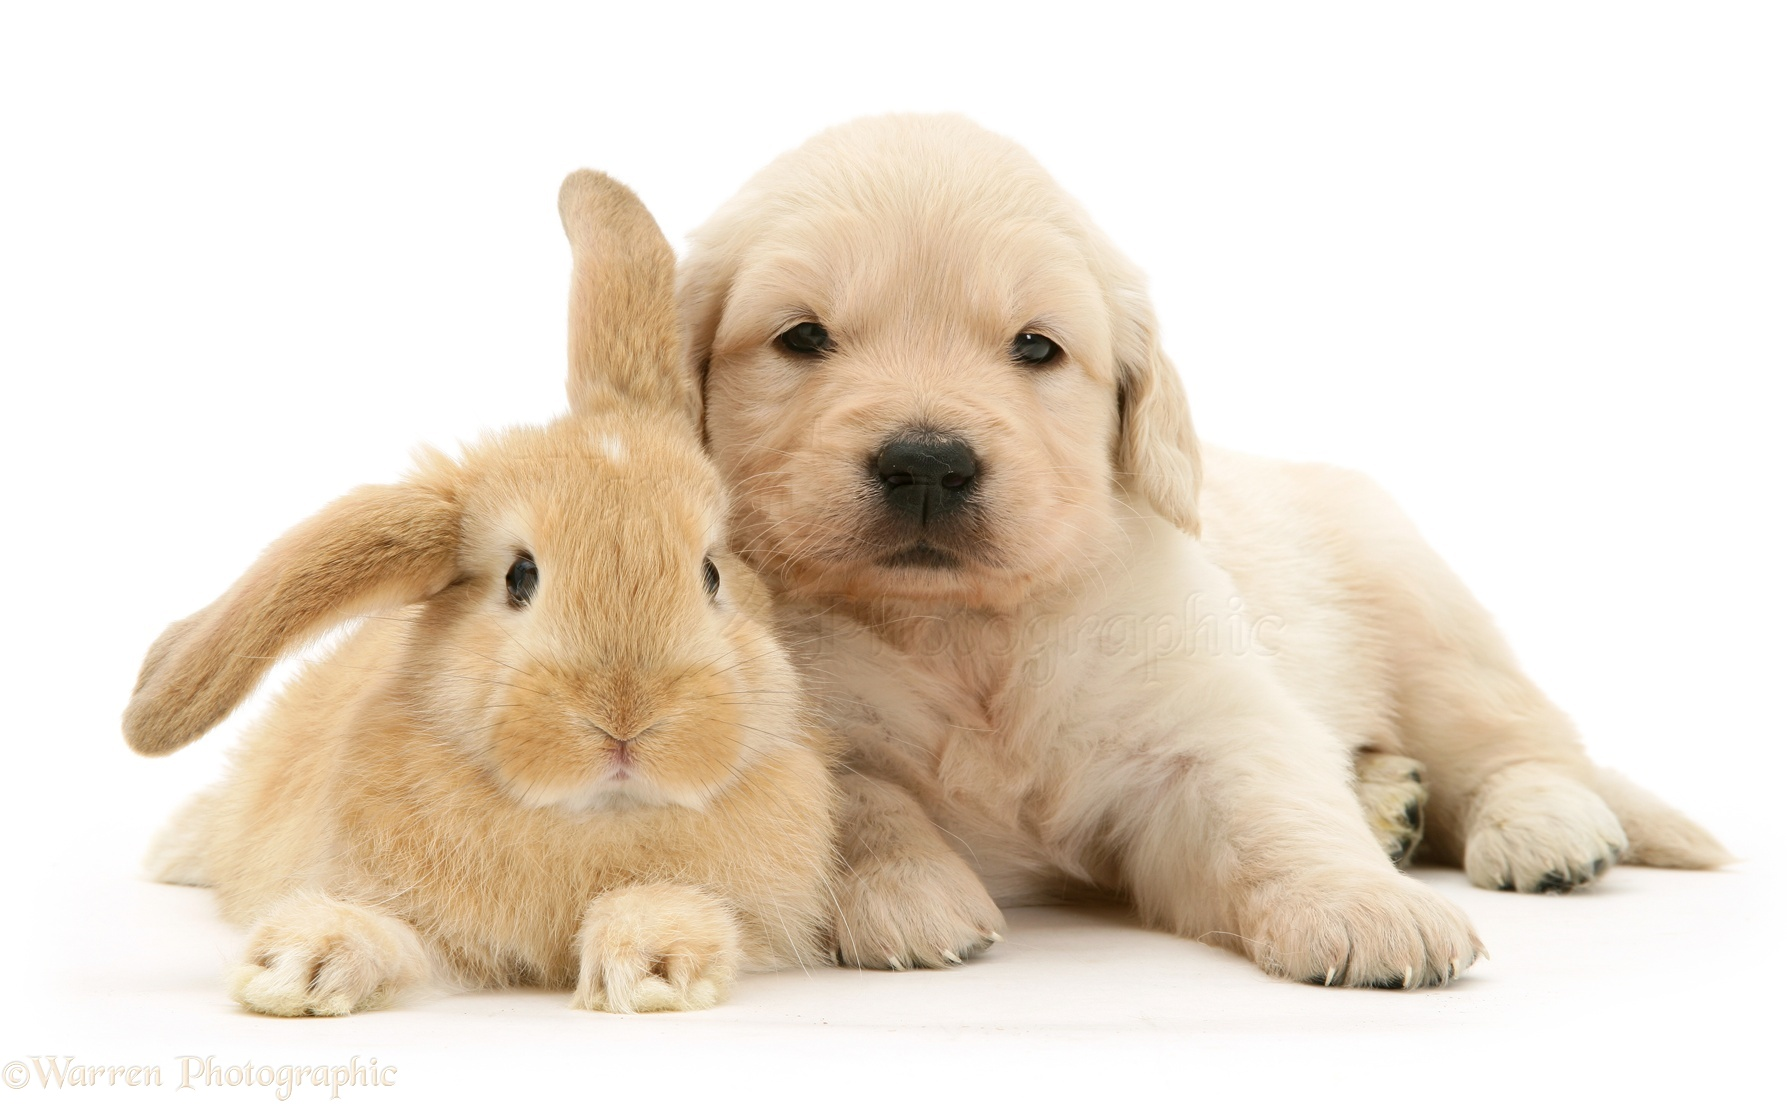 Baby sandy Lop rabbit with Golden Retriever pup photo - WP10578